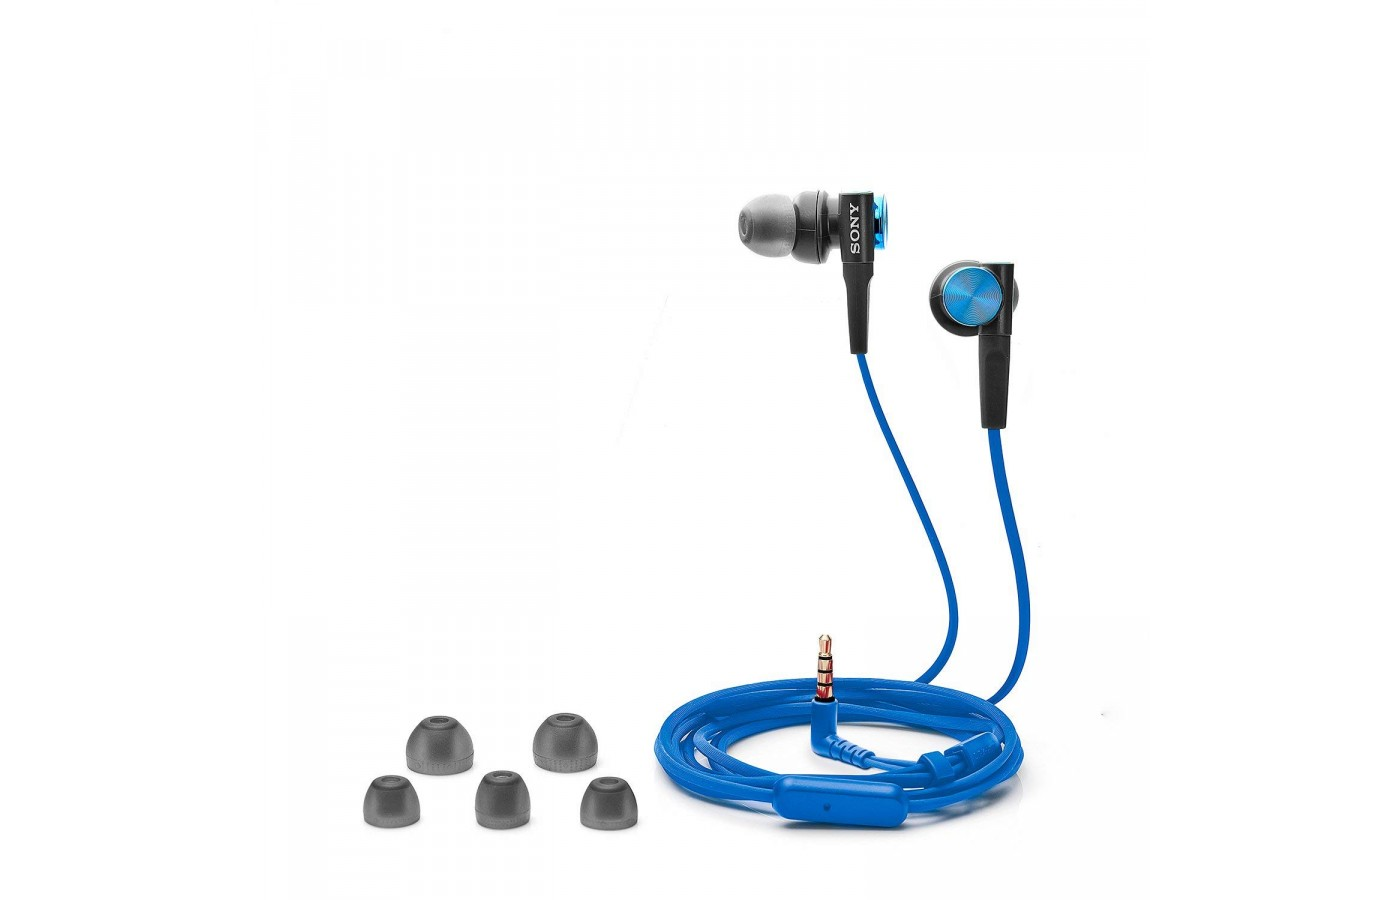 The Sony MDRXB50AP offers additional replacement ear buds for a more customized fit.